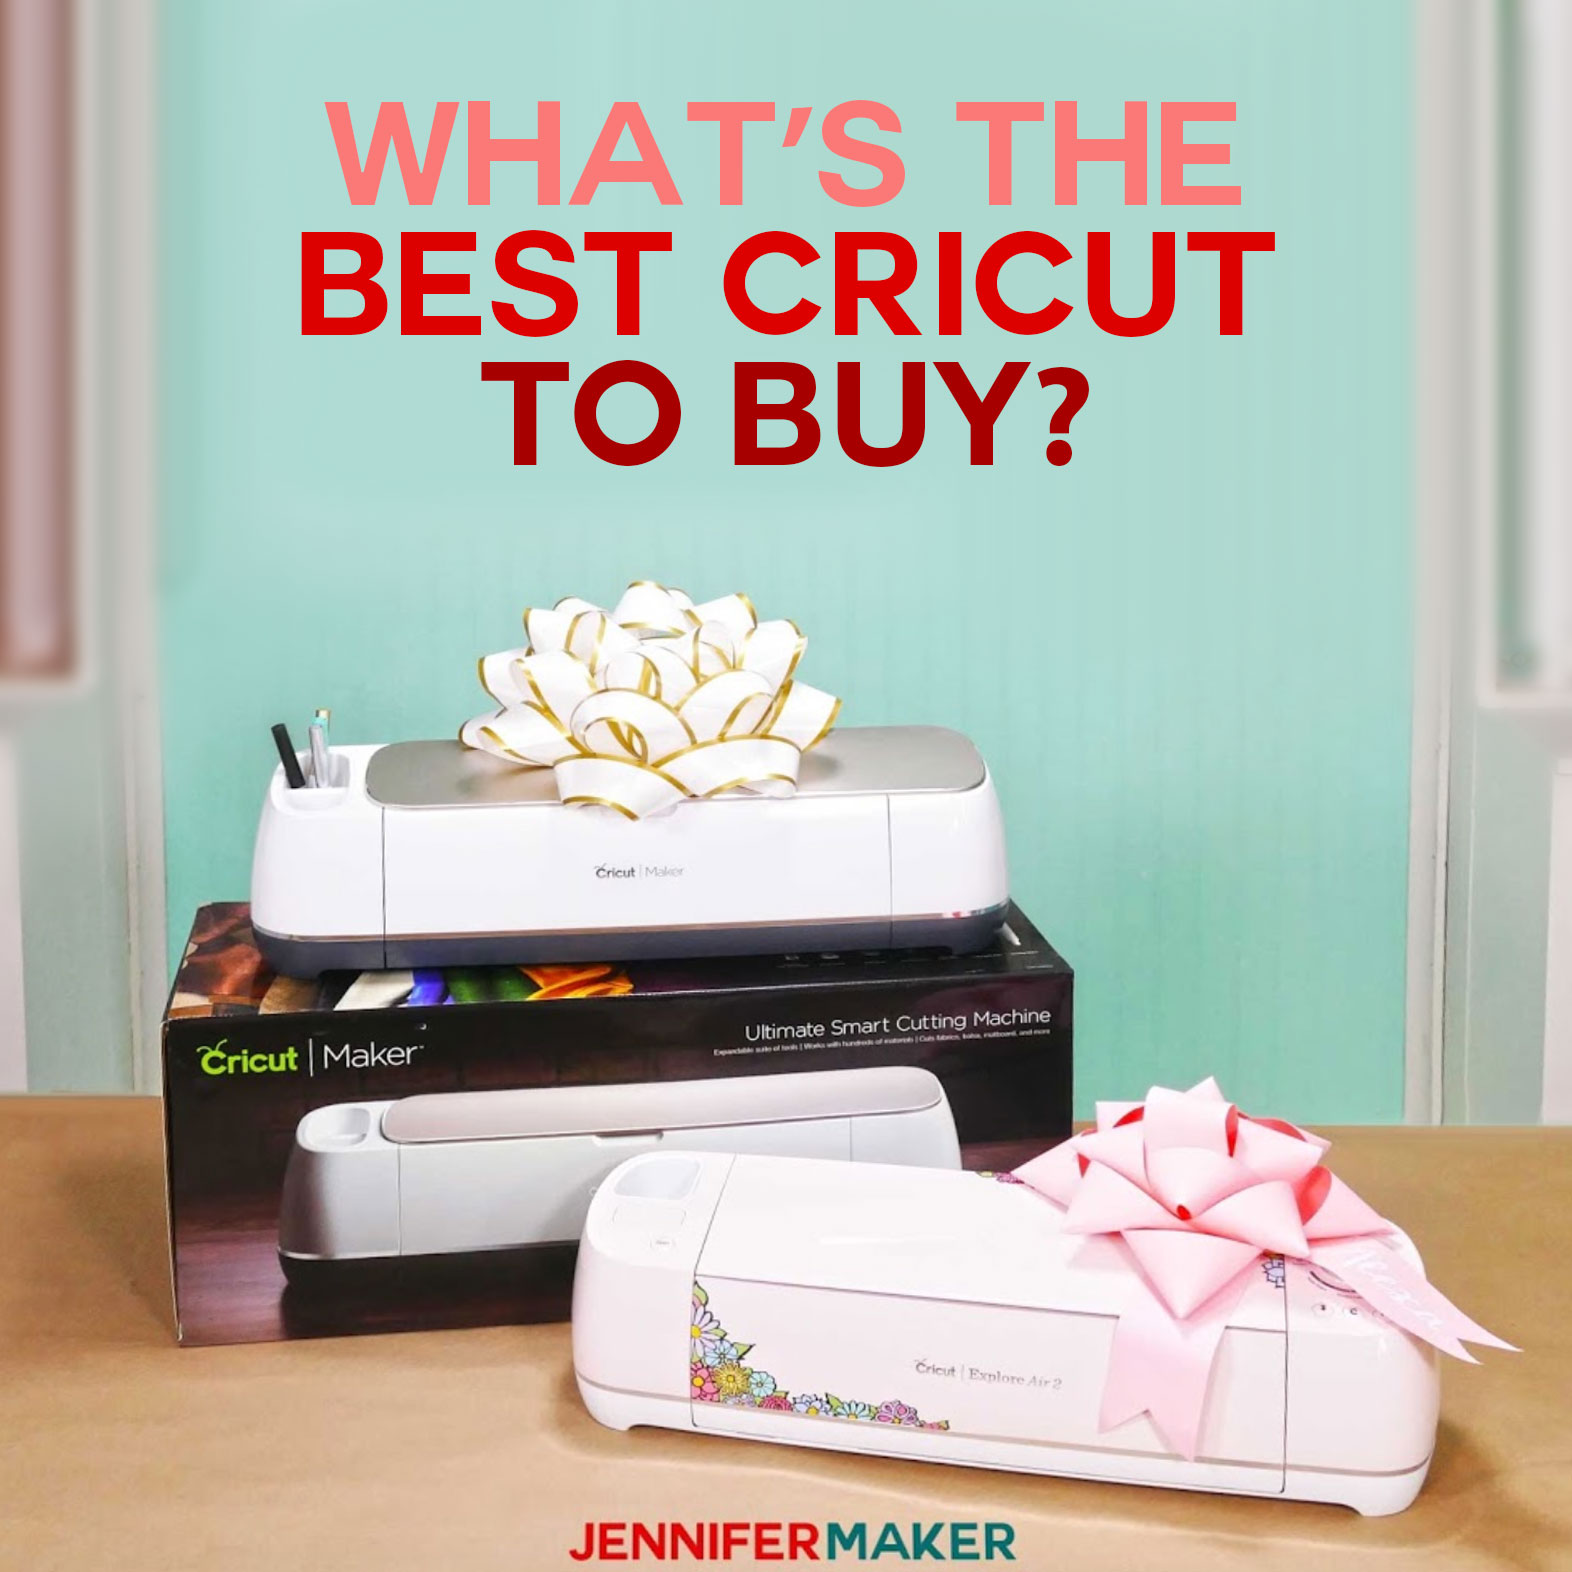 Where Is The Best Place To Buy A Cricut Machine